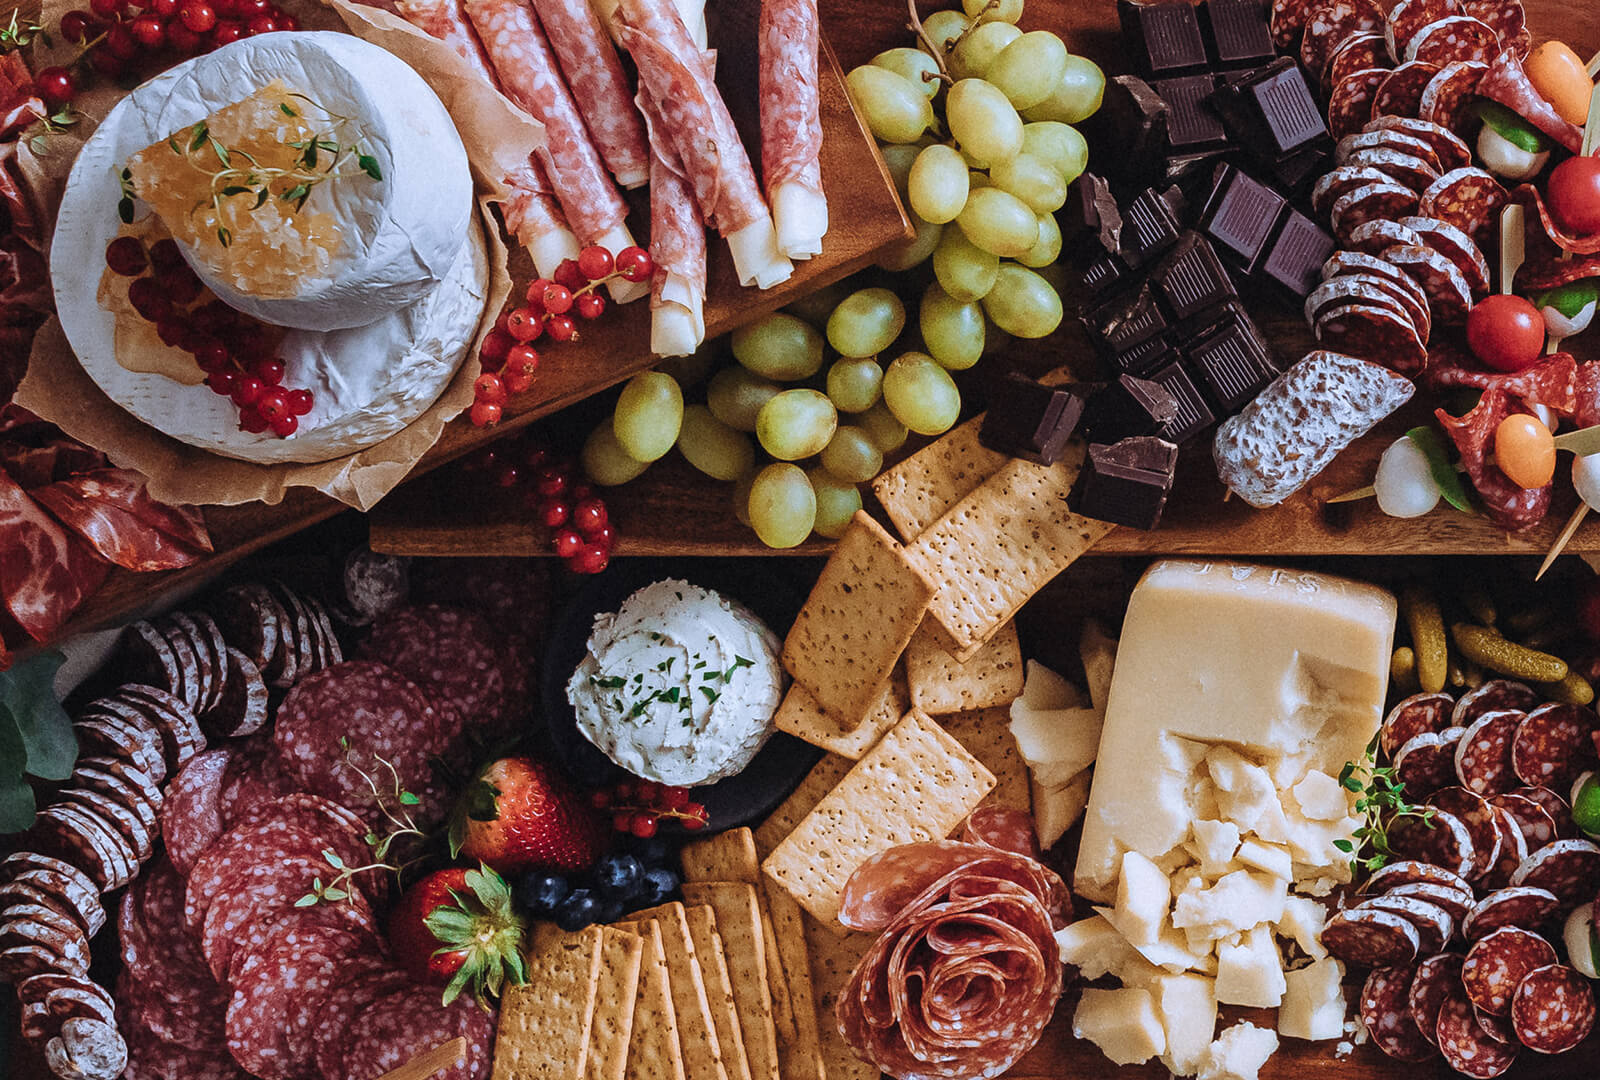 Showstopping Charcuterie from Columbus Craft Meats